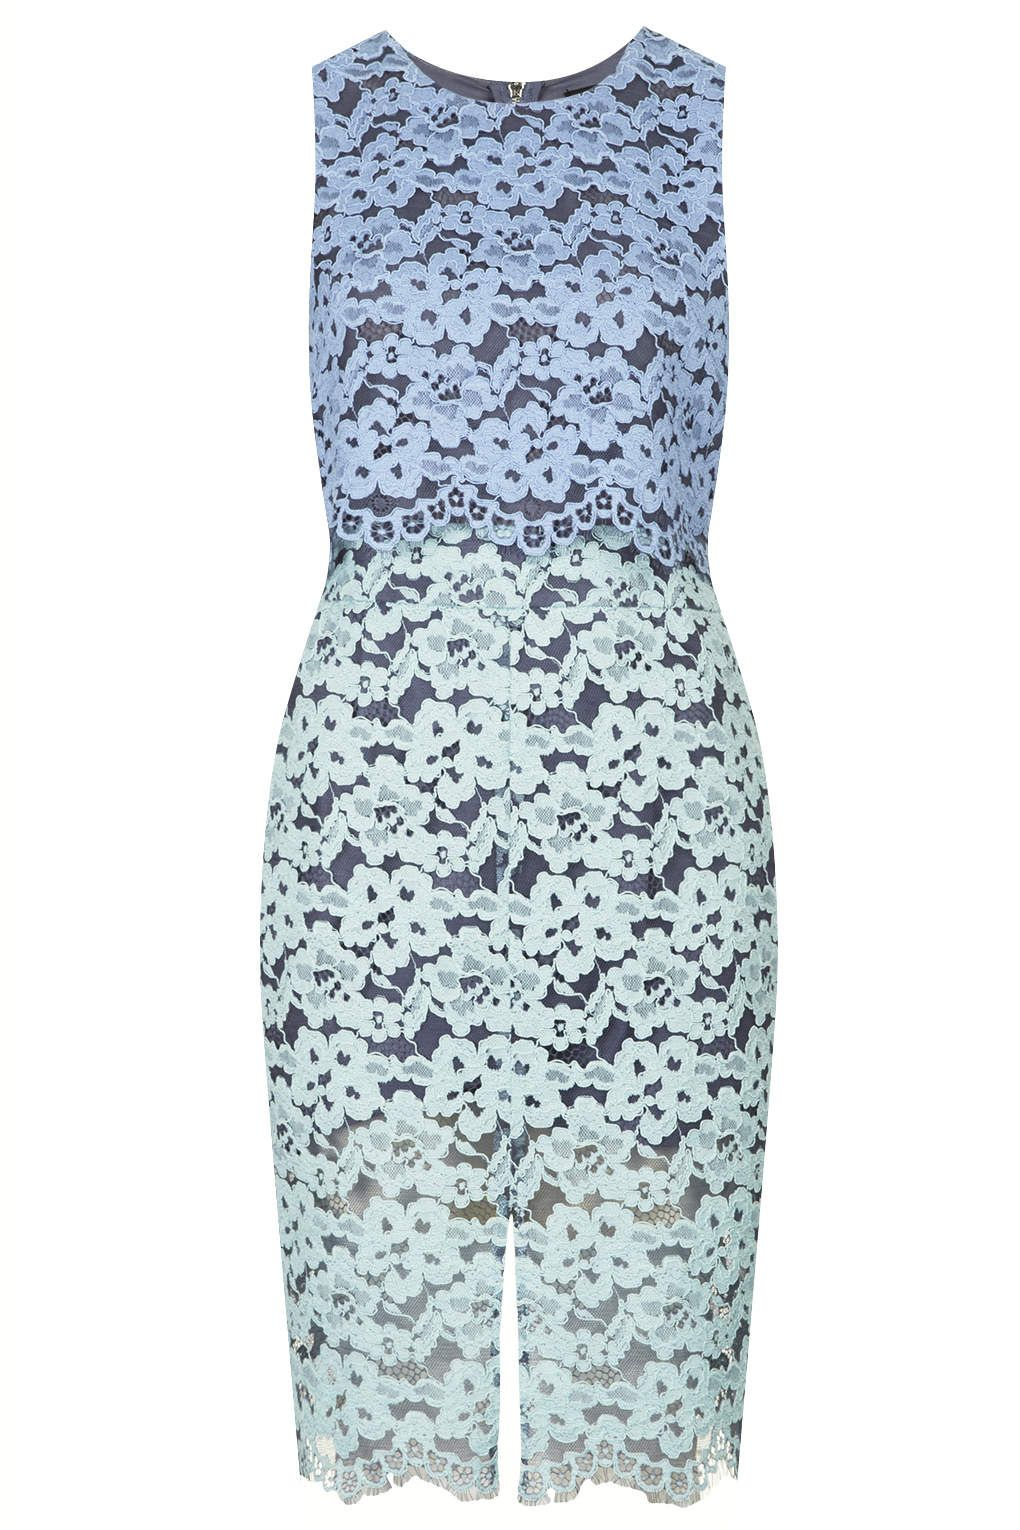 Two-Tone Lace Midi Dress - #topshop | My style - haves, want and ...